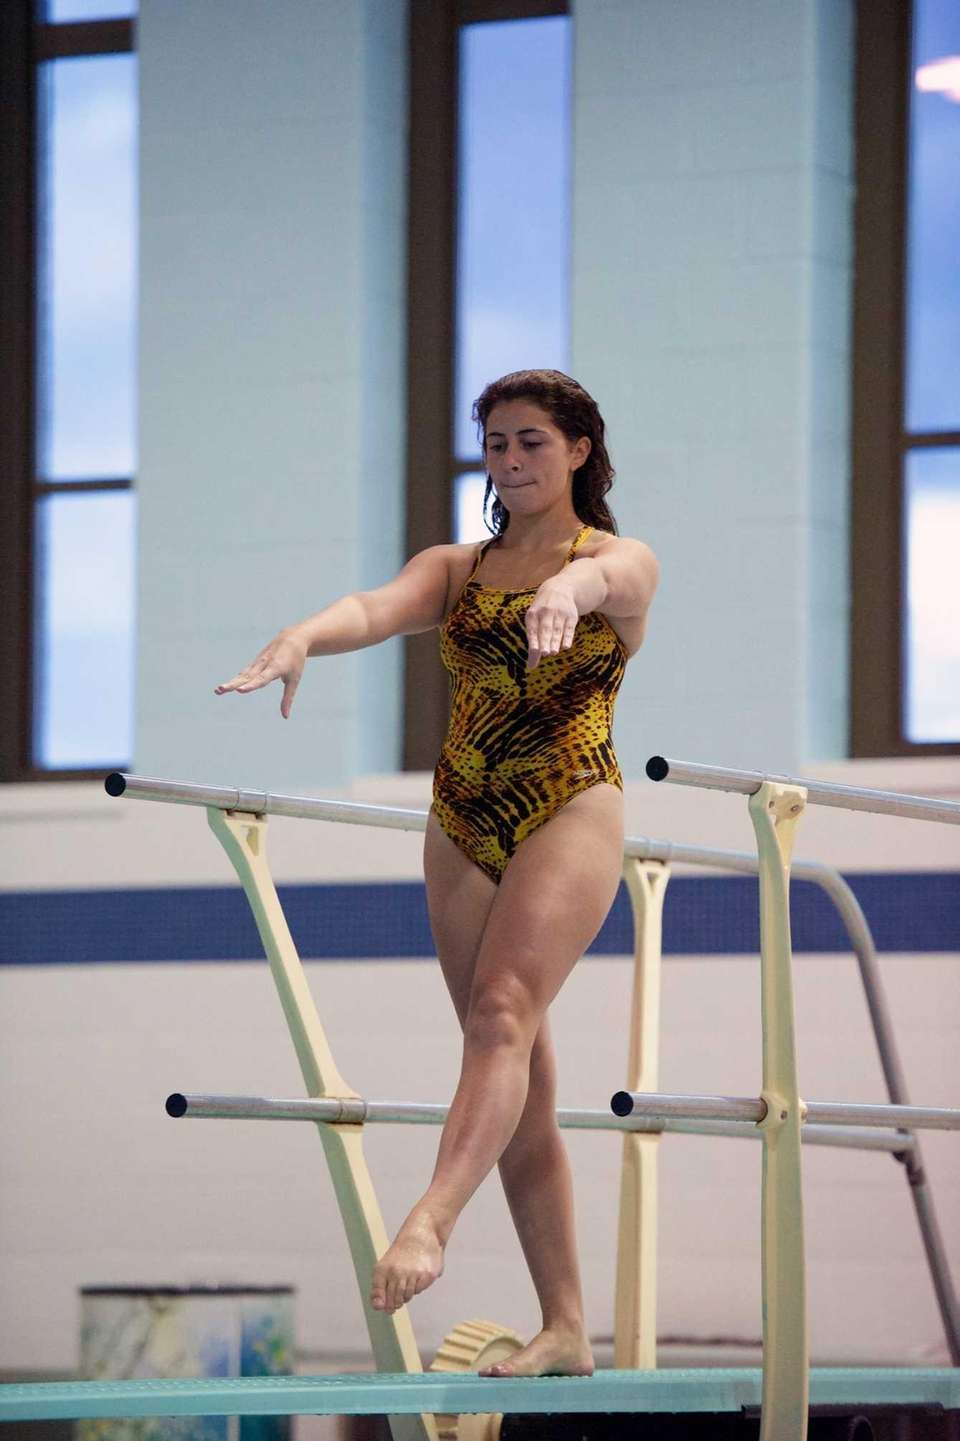 Kailey White competes in the Suffolk County Diving